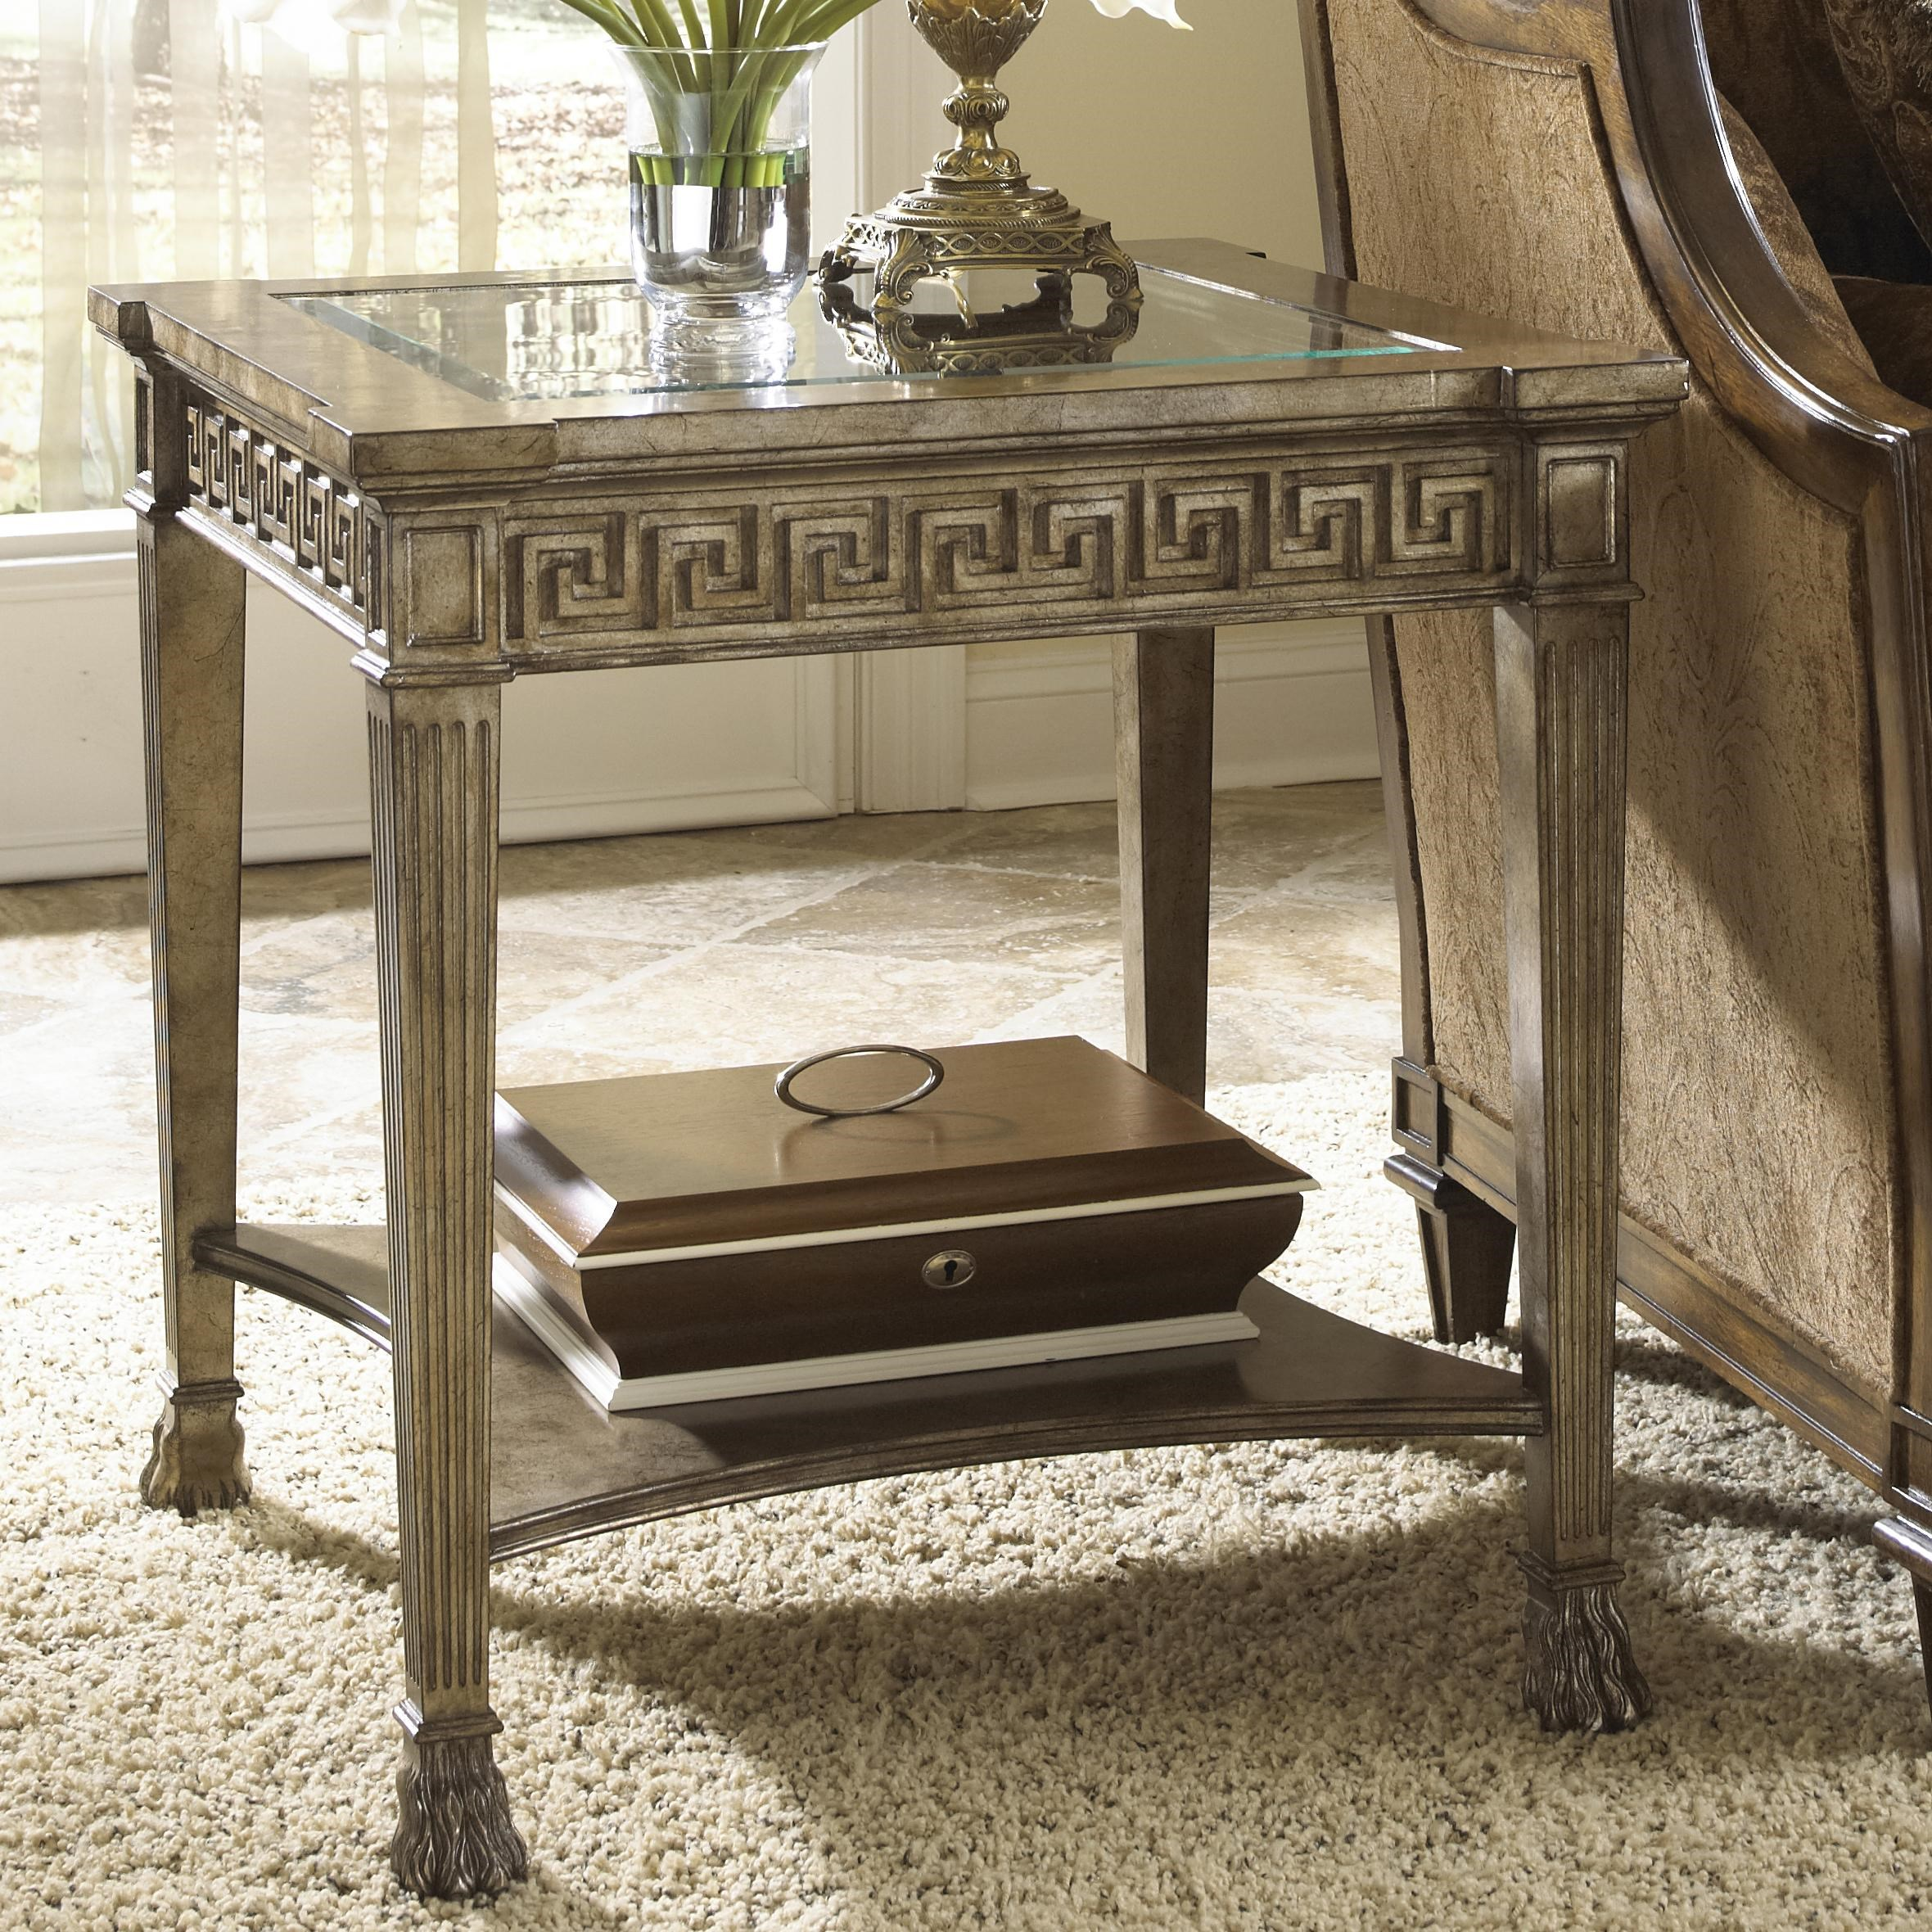 Delightful Belvedere Furniture #16 - Fine Furniture Design Belvedere Grecian Style Side Table With Glass Top